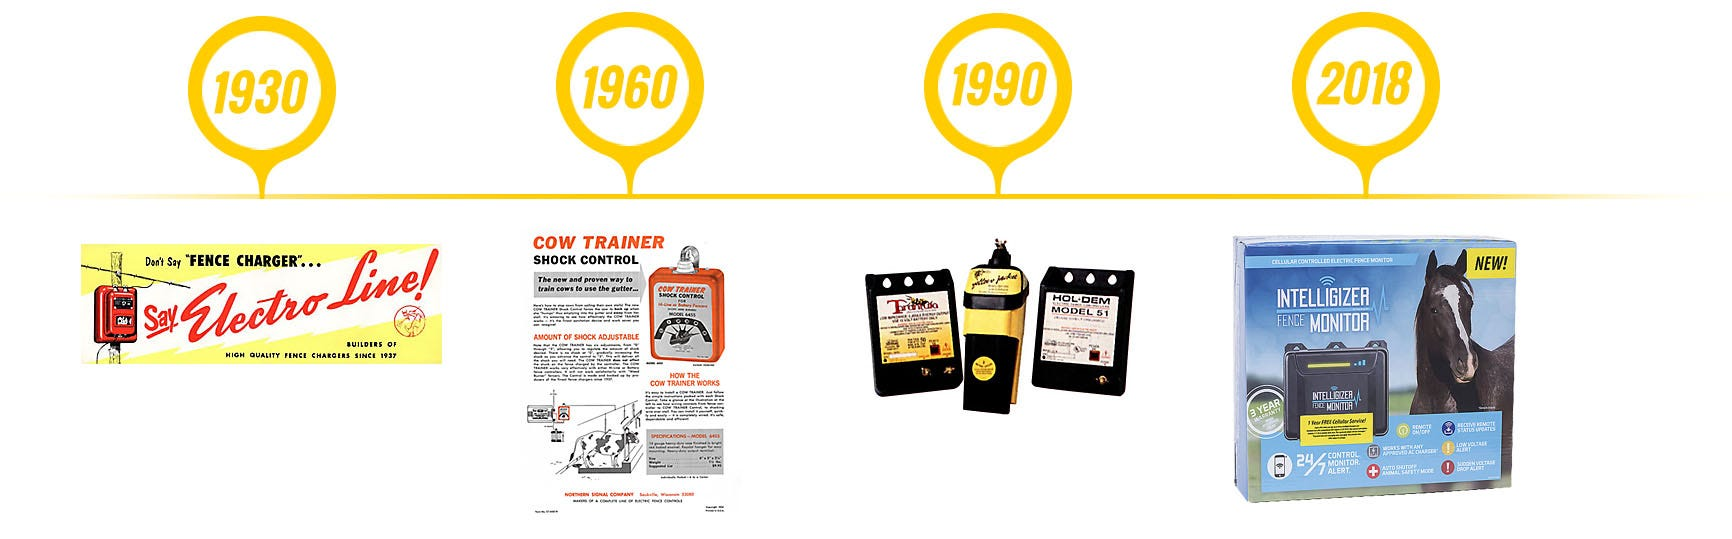 A timeline of Zareba products from 1930 until today